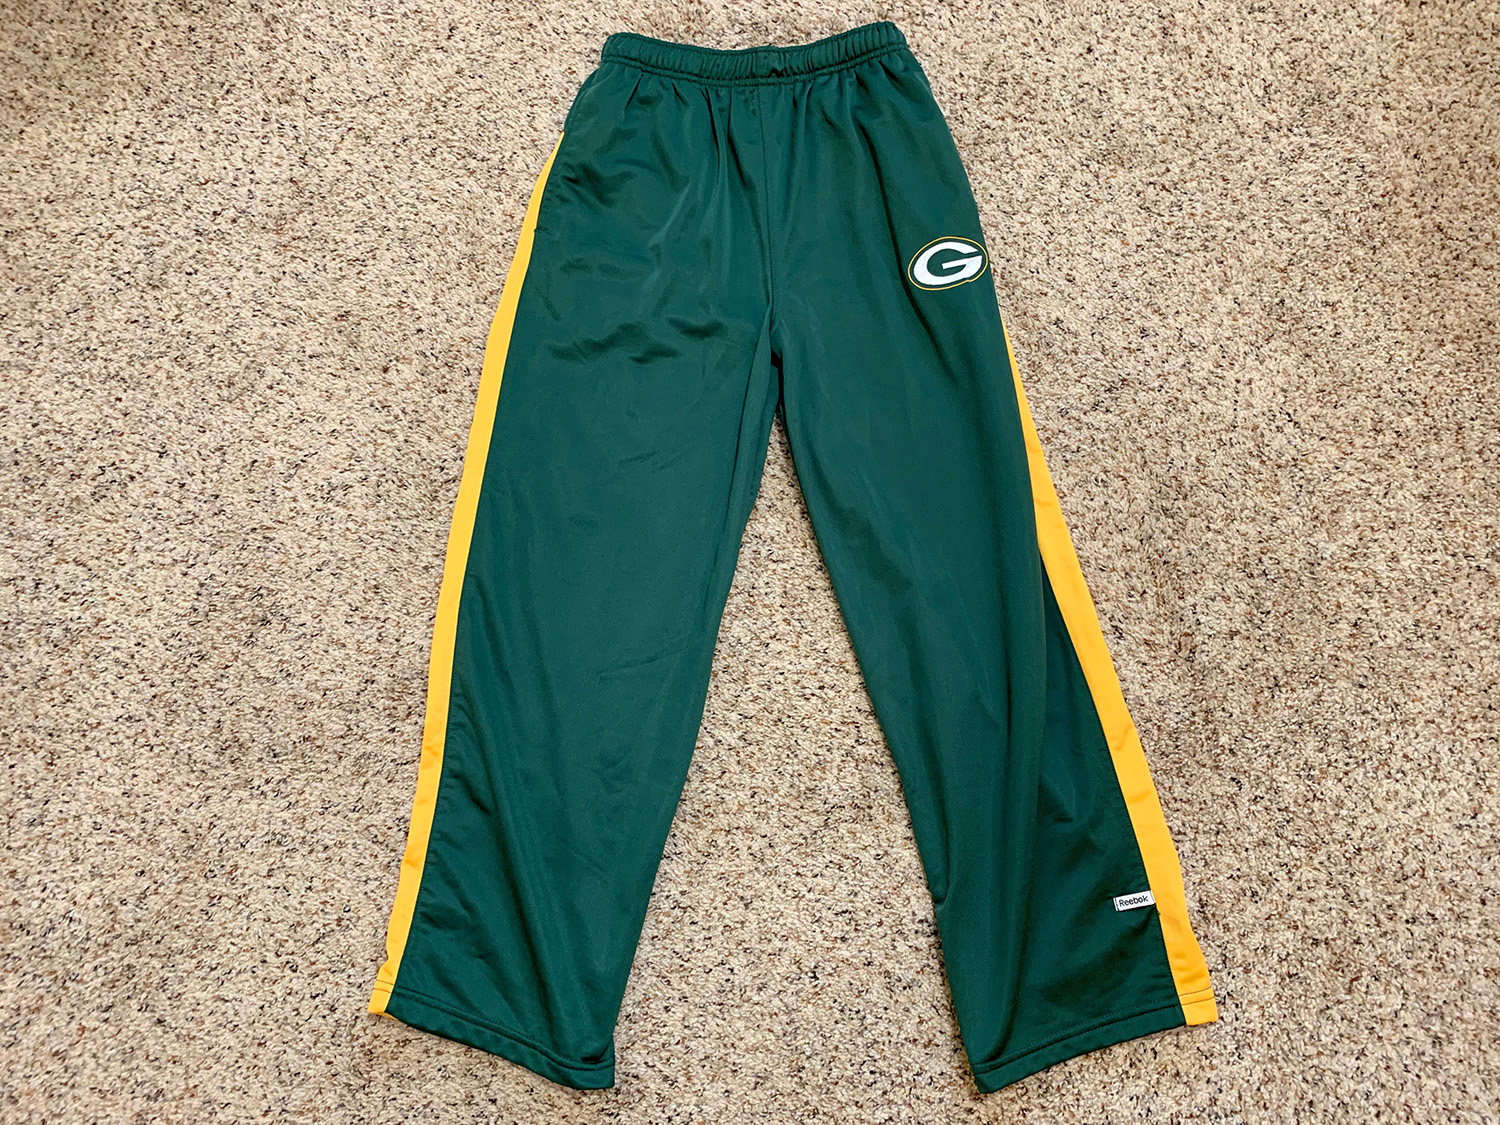 Reebok NFL Team Apparel Youth Green Bay Packers Logo Pants Size L